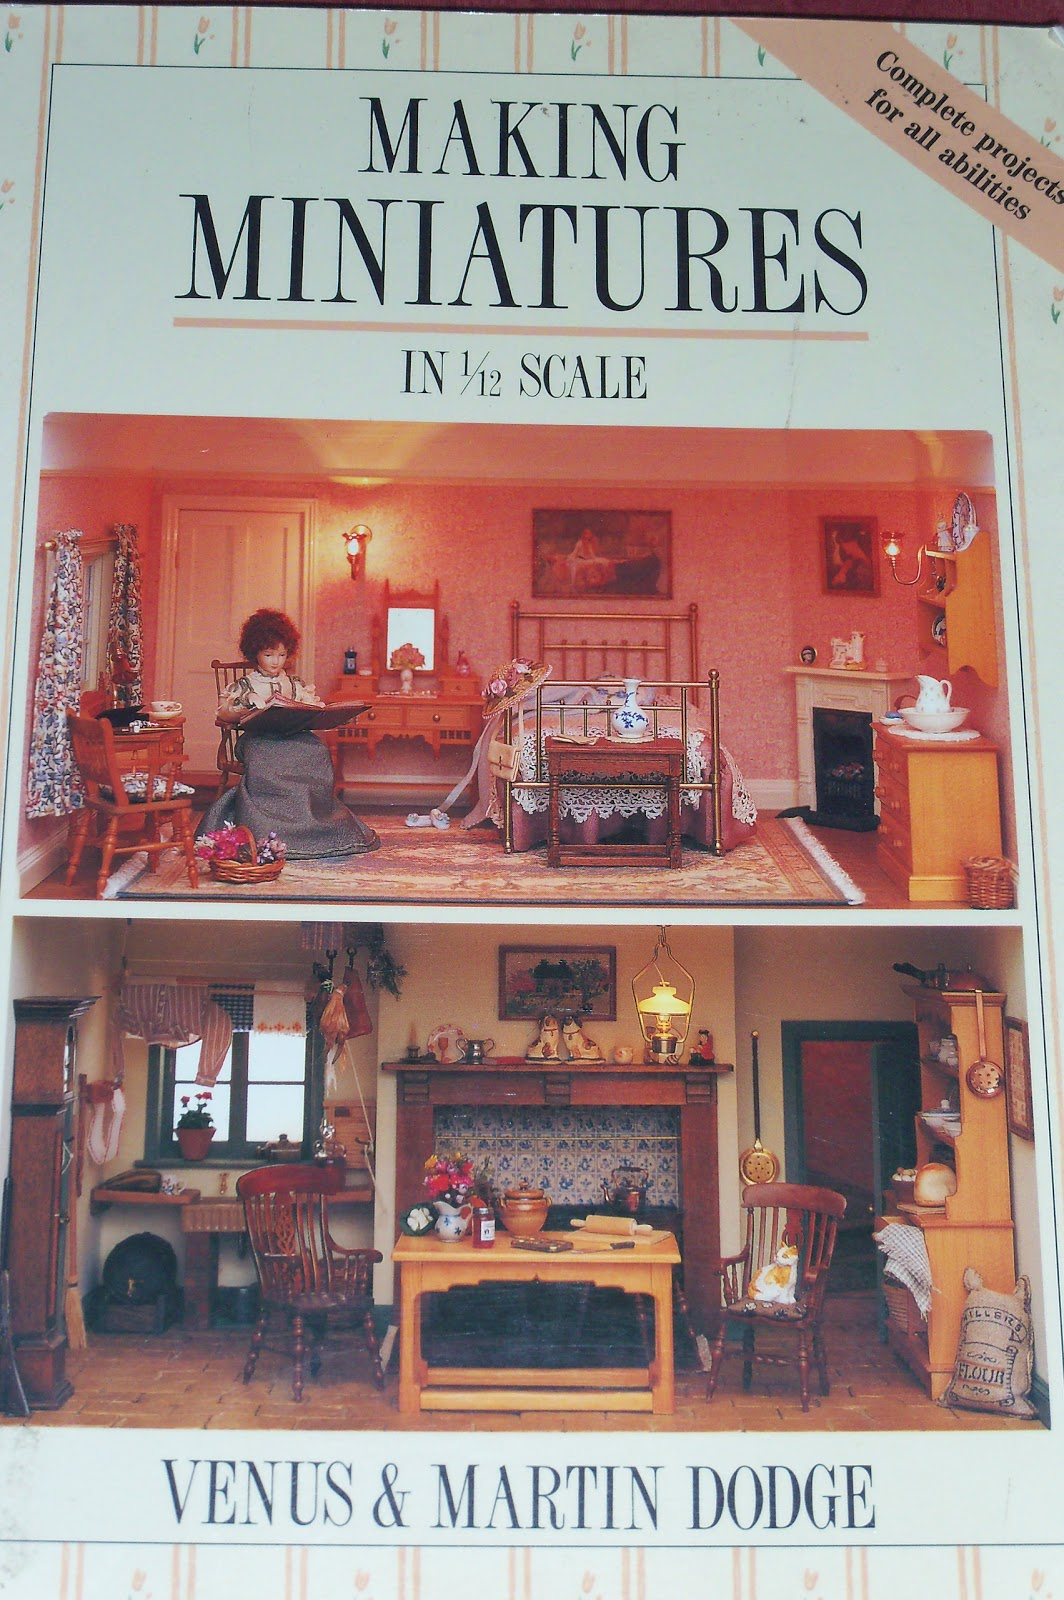 Raggedy kingdom national dollhouse miniature month day 13 venus making miniatures in 112 scale isbn 0 7153 9963 2 and the new dolls house do it yourself book isbn 0 7153 0616 2 both of these books by venus and solutioingenieria Choice Image